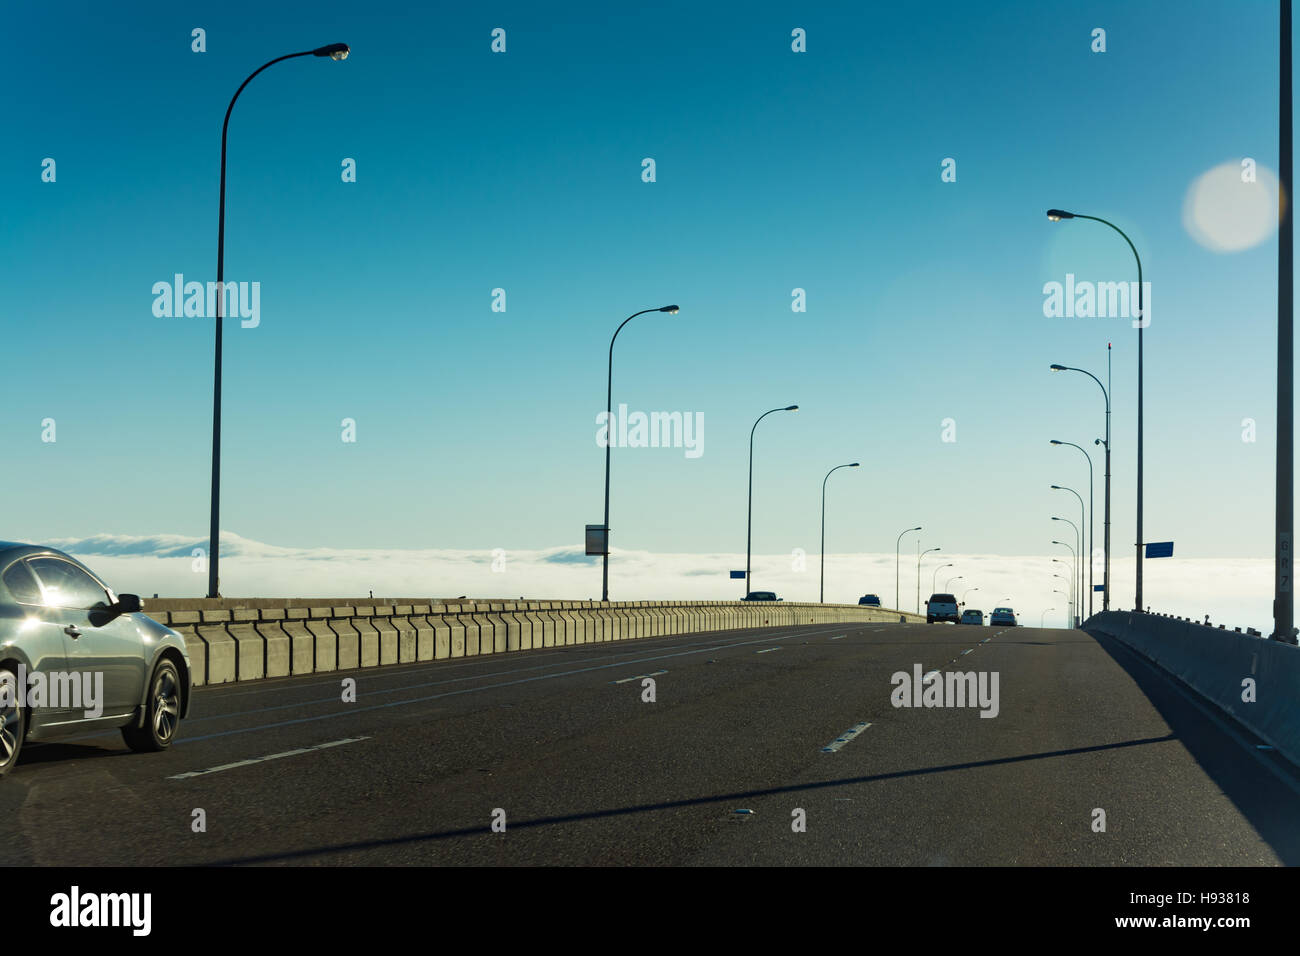 Crossing the Coronado Bridge into a Marine Layer Phenomenon on the ocean, it appears to be driving into the clouds. - Stock Image